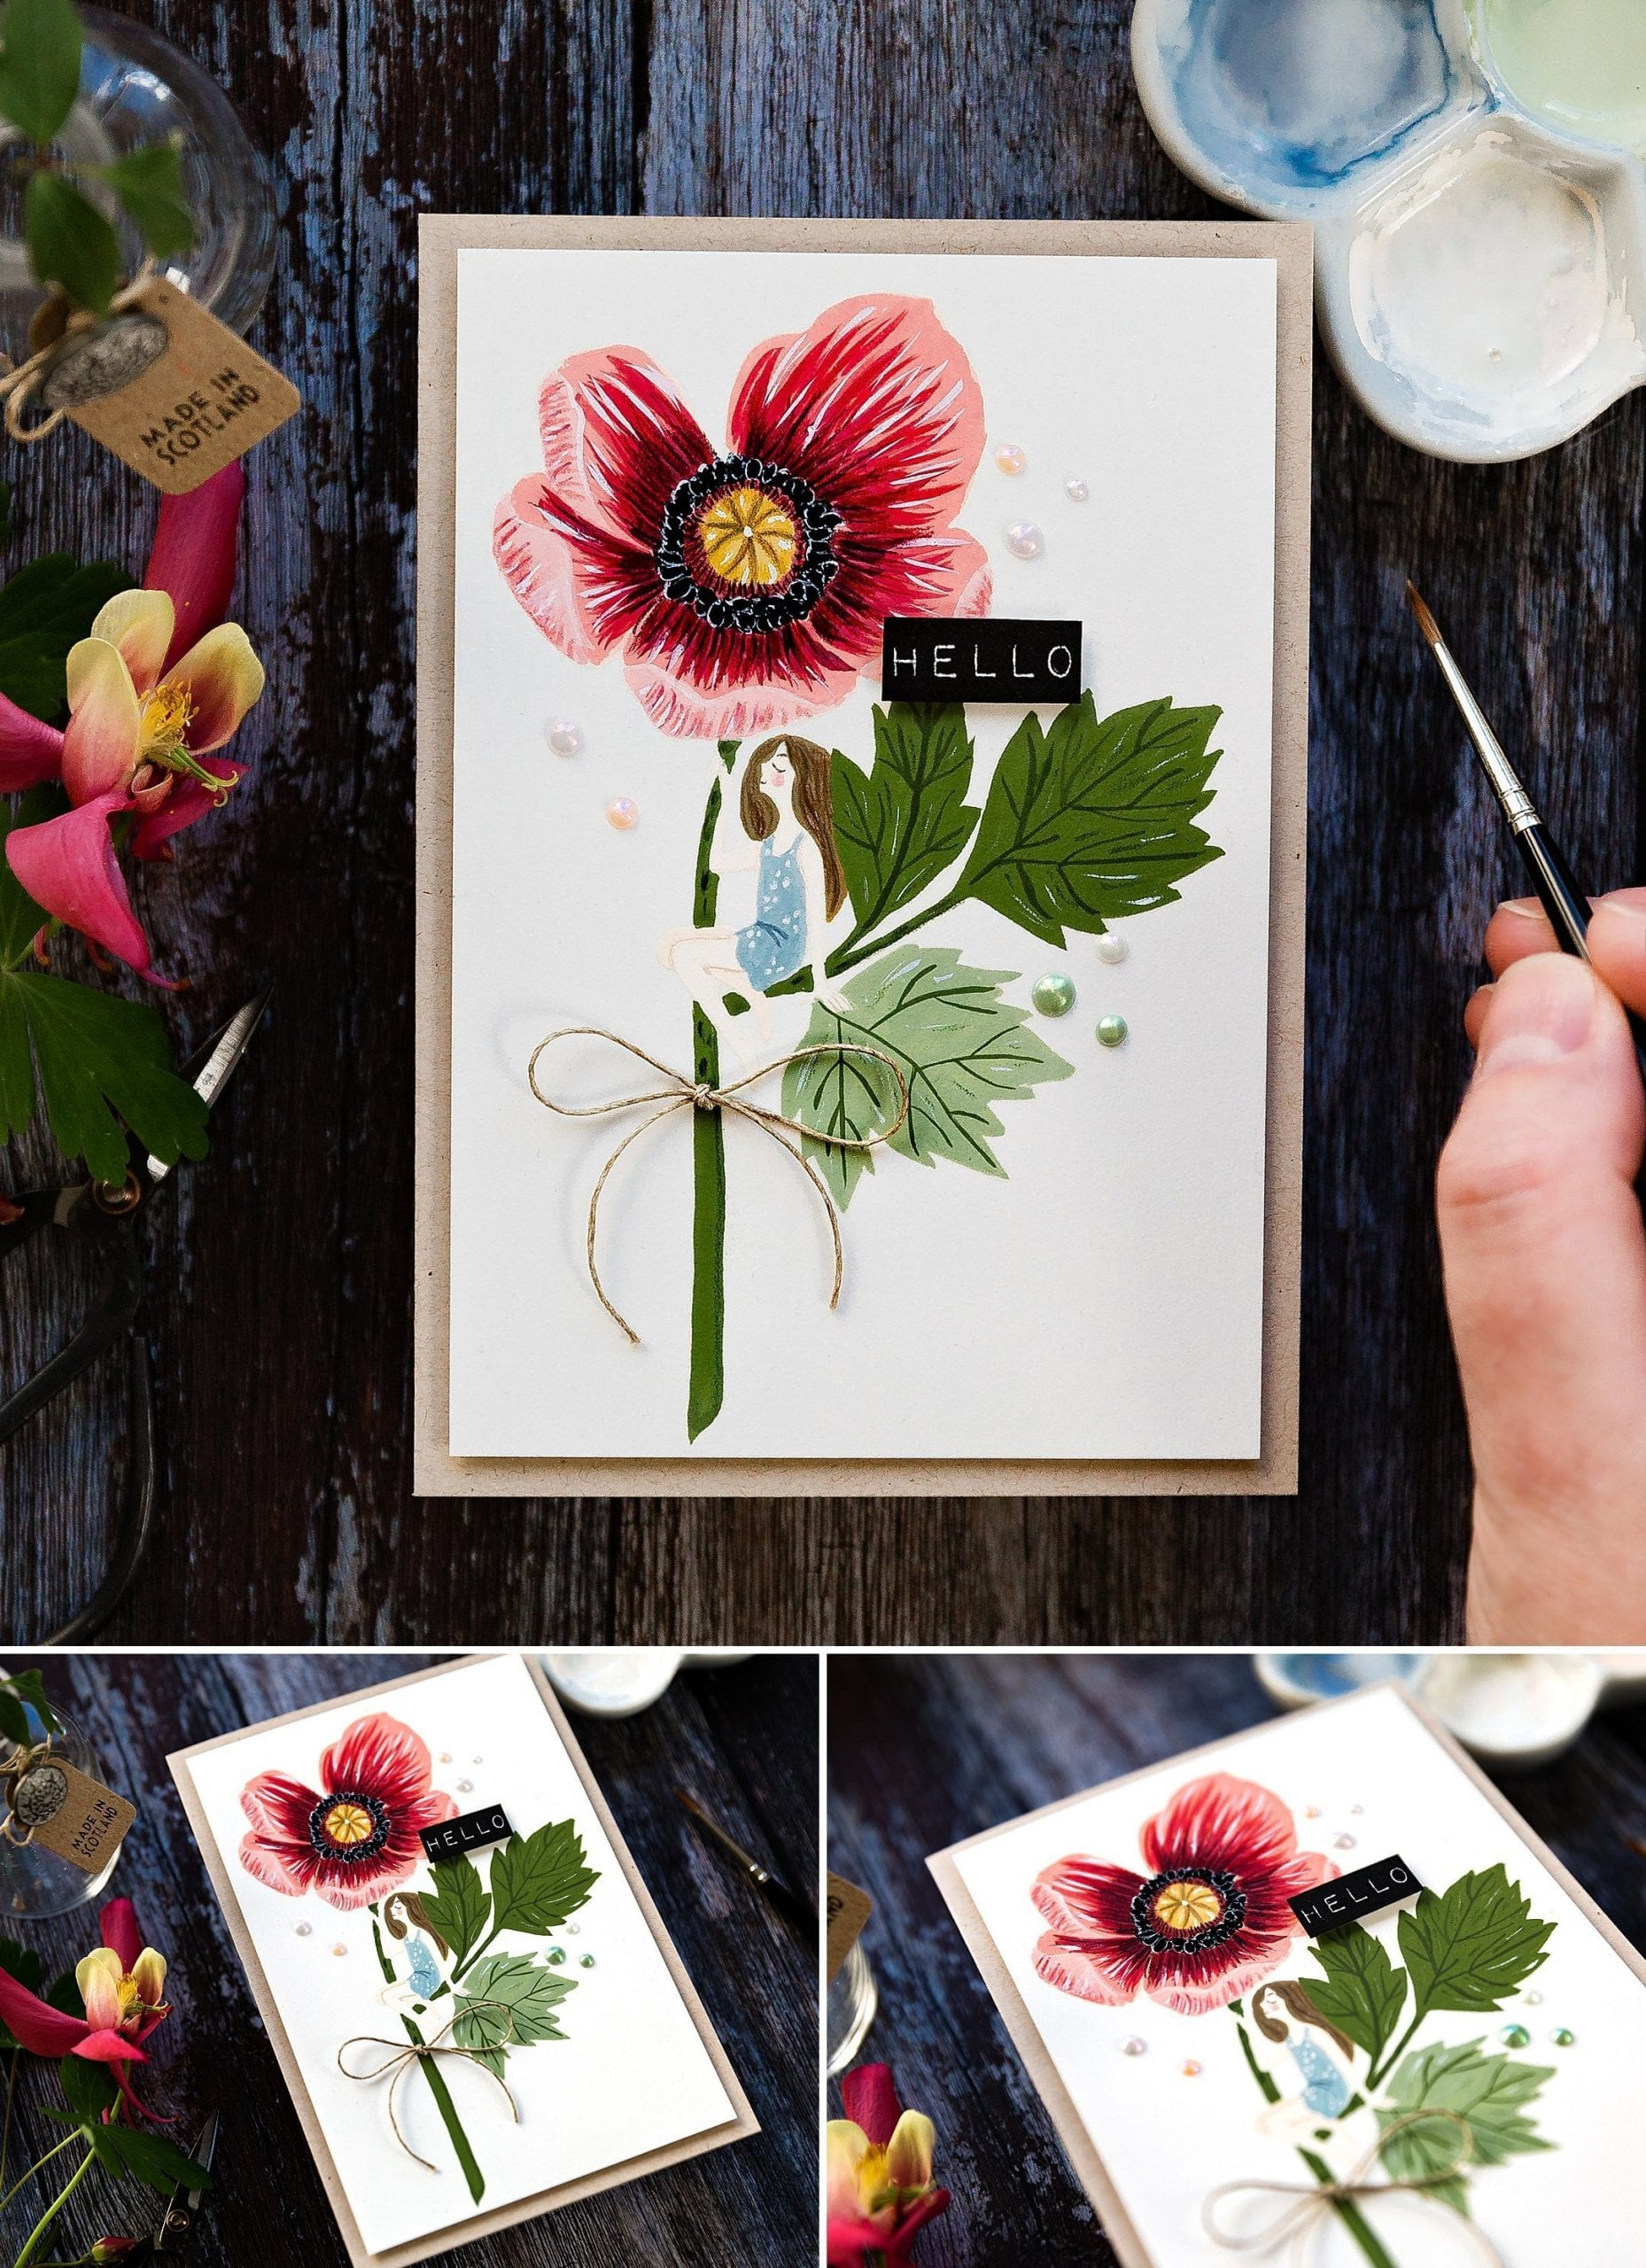 Playing with gouache, handmade poppy card by Debby Hughes using supplies from Waffle Flower in collaboration with Oana Befort. Find out more here: https://limedoodledesign.com/2019/06/playing-with-gouache-waffle-flower-release/